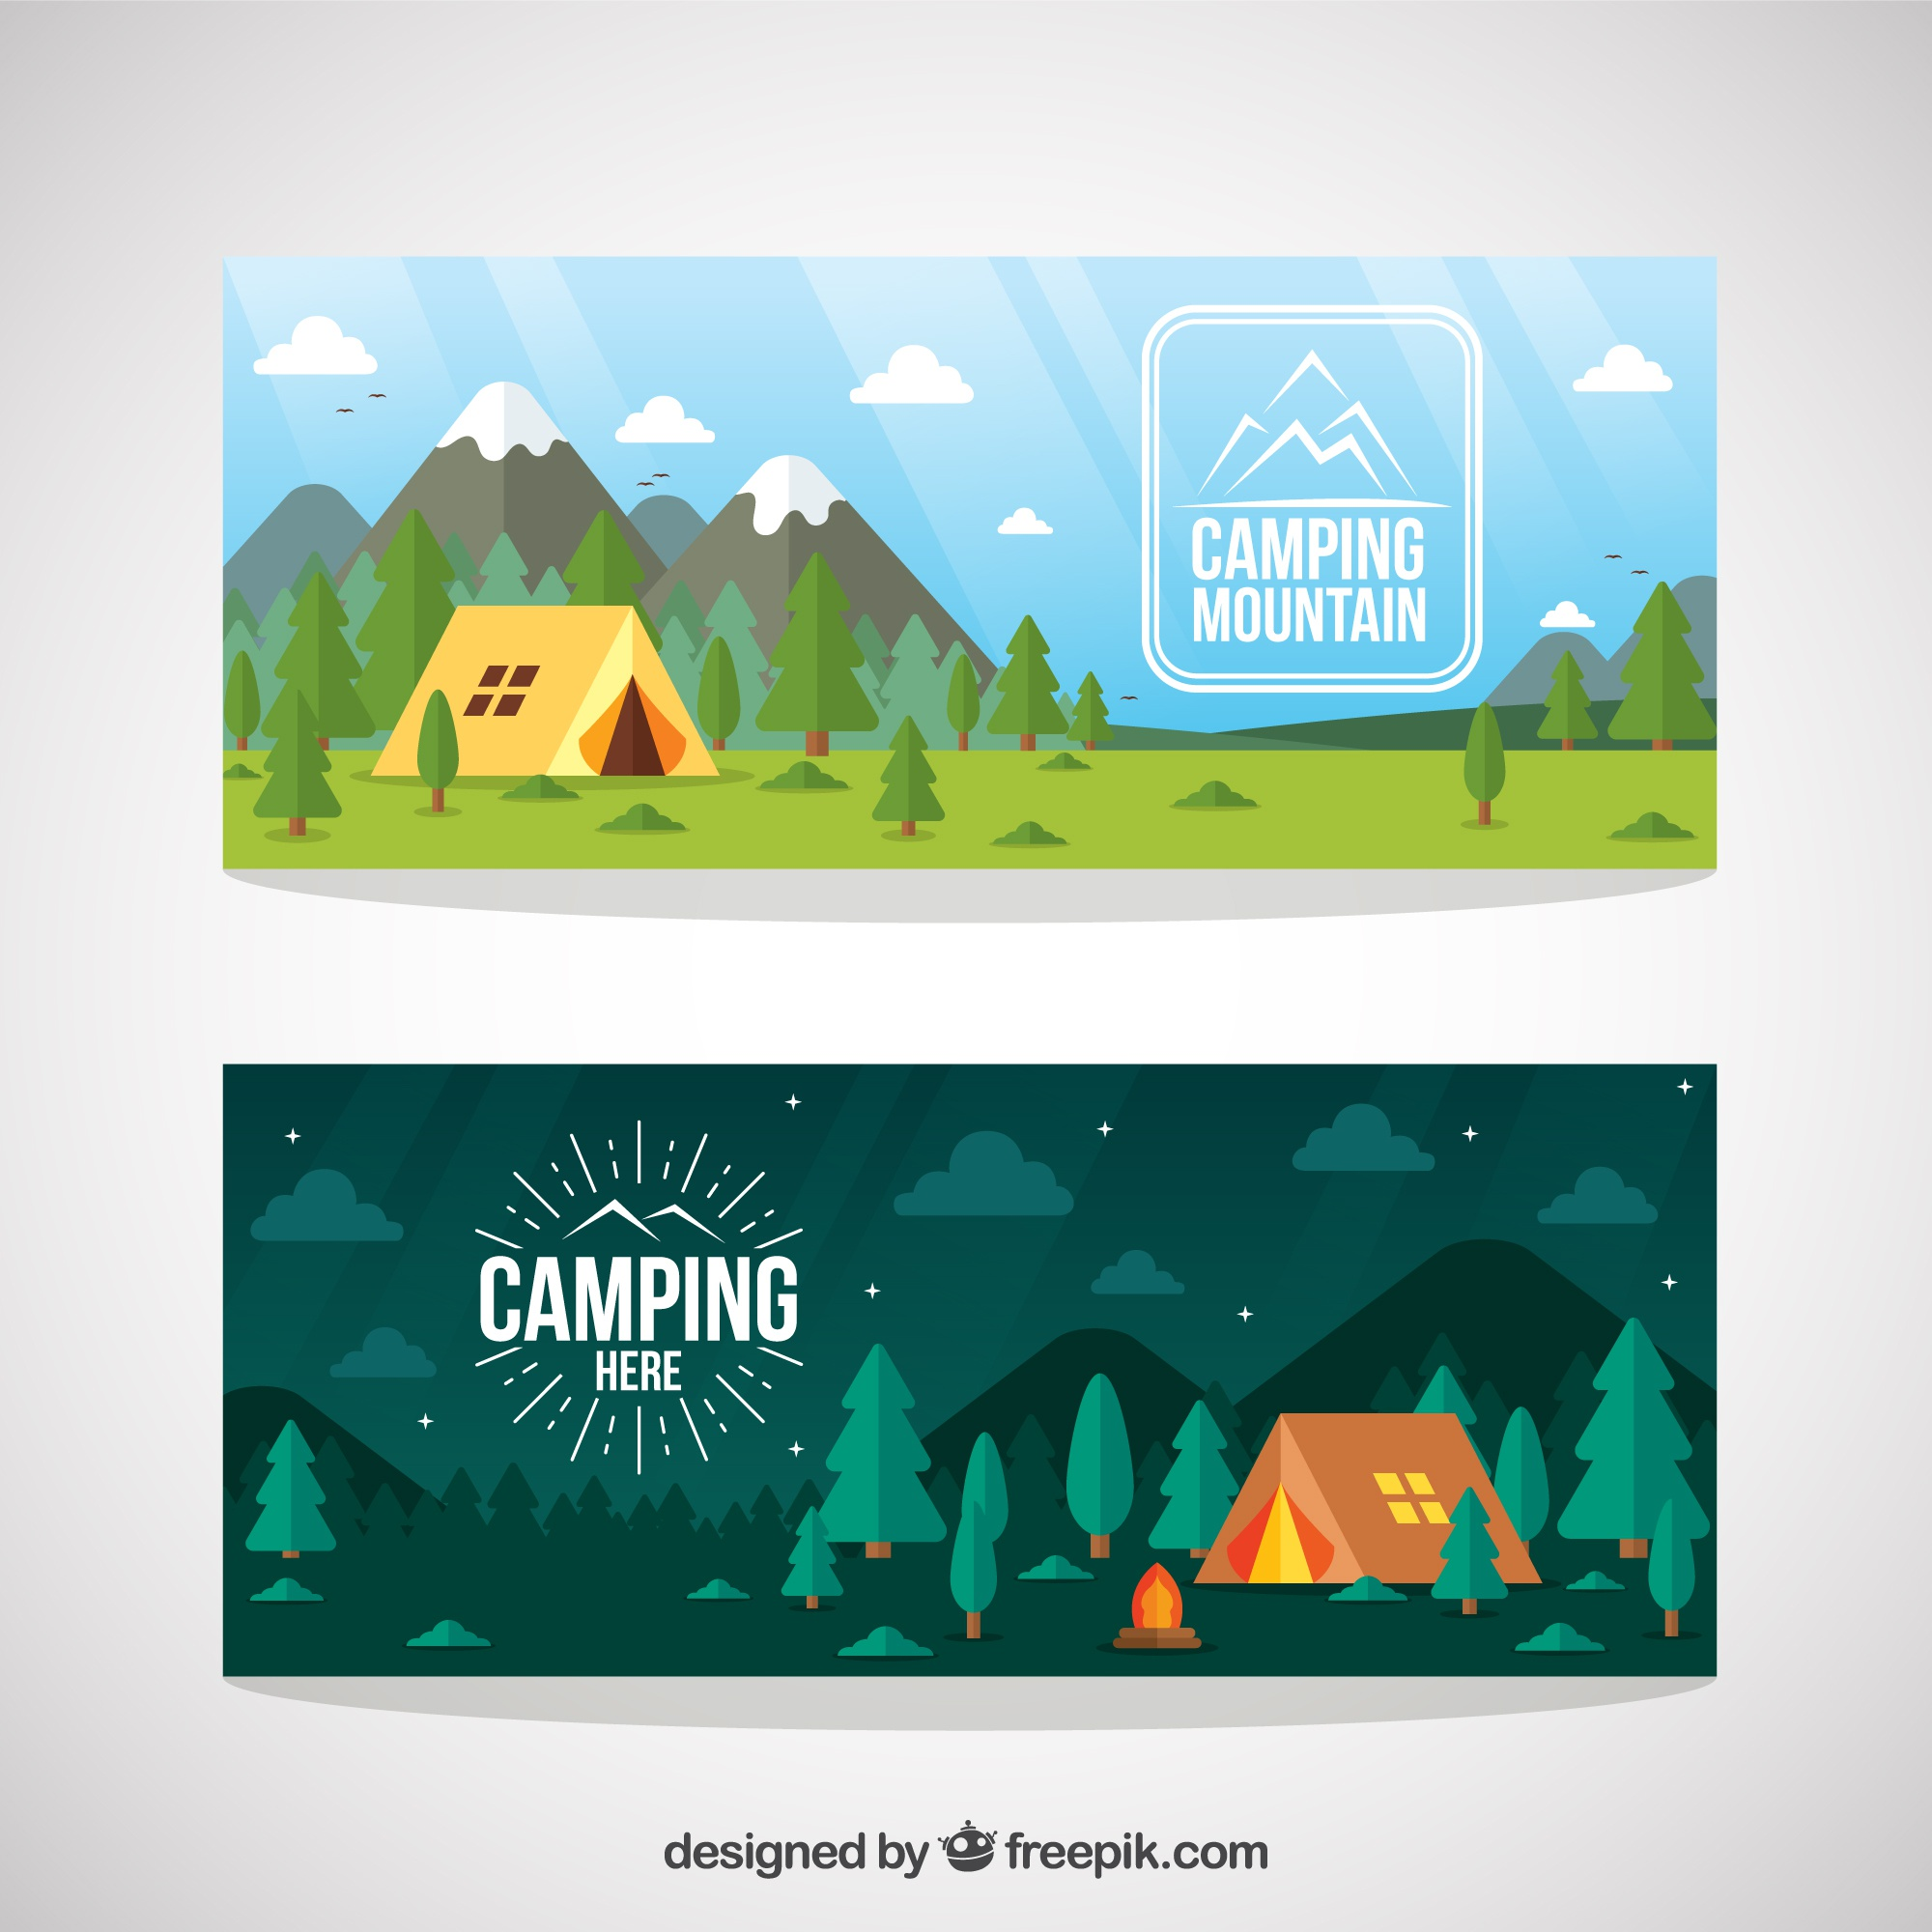 Hand drawn camping tent in a forest banners